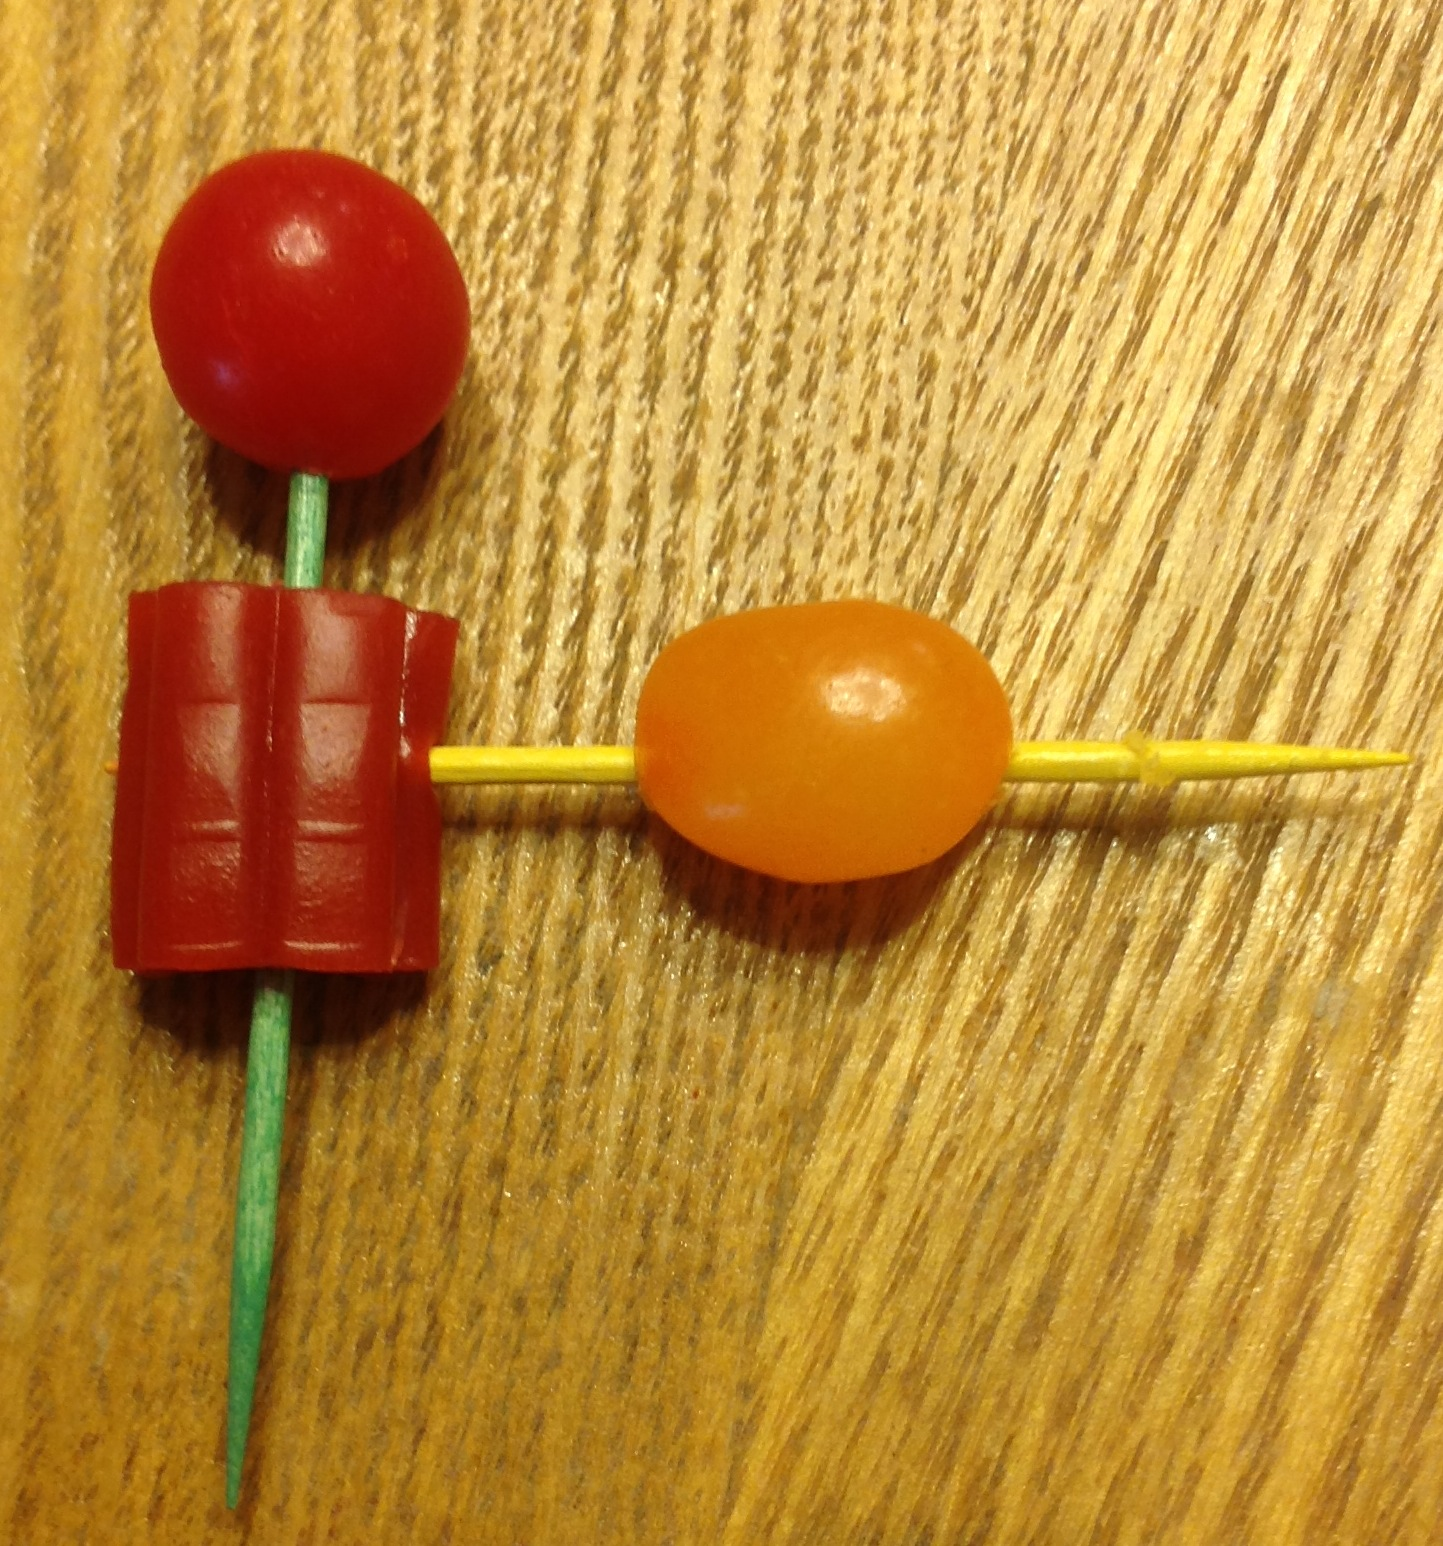 Using candy to teach DNA structure | Inspired To Educate